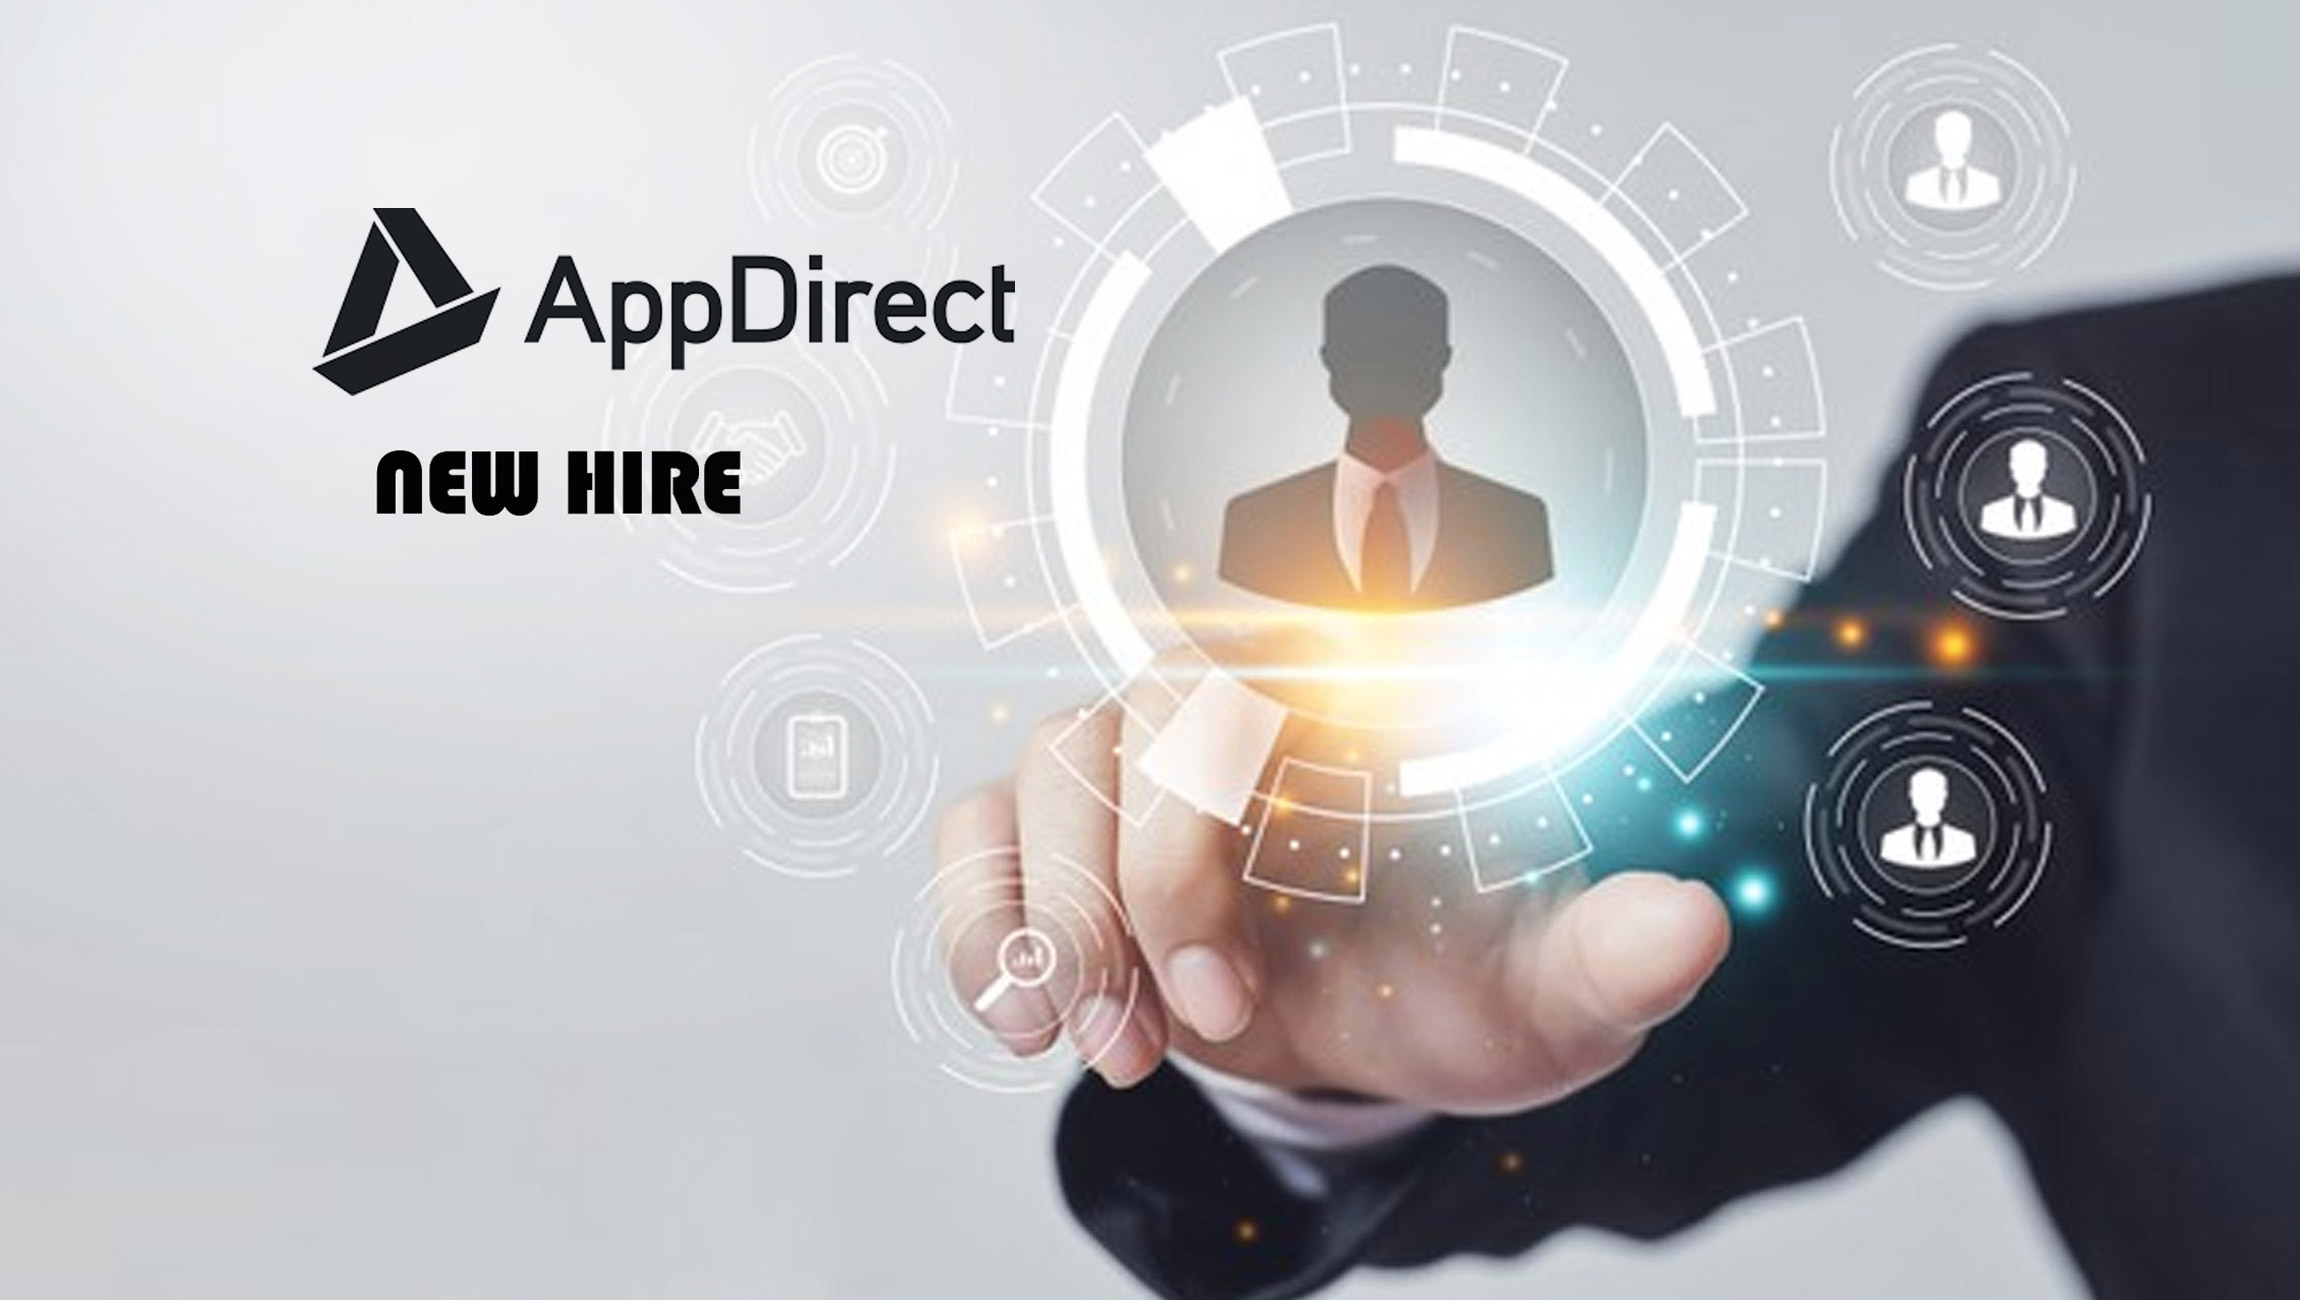 AppDirect Hires First CMO To Drive Growth And Brand Awareness